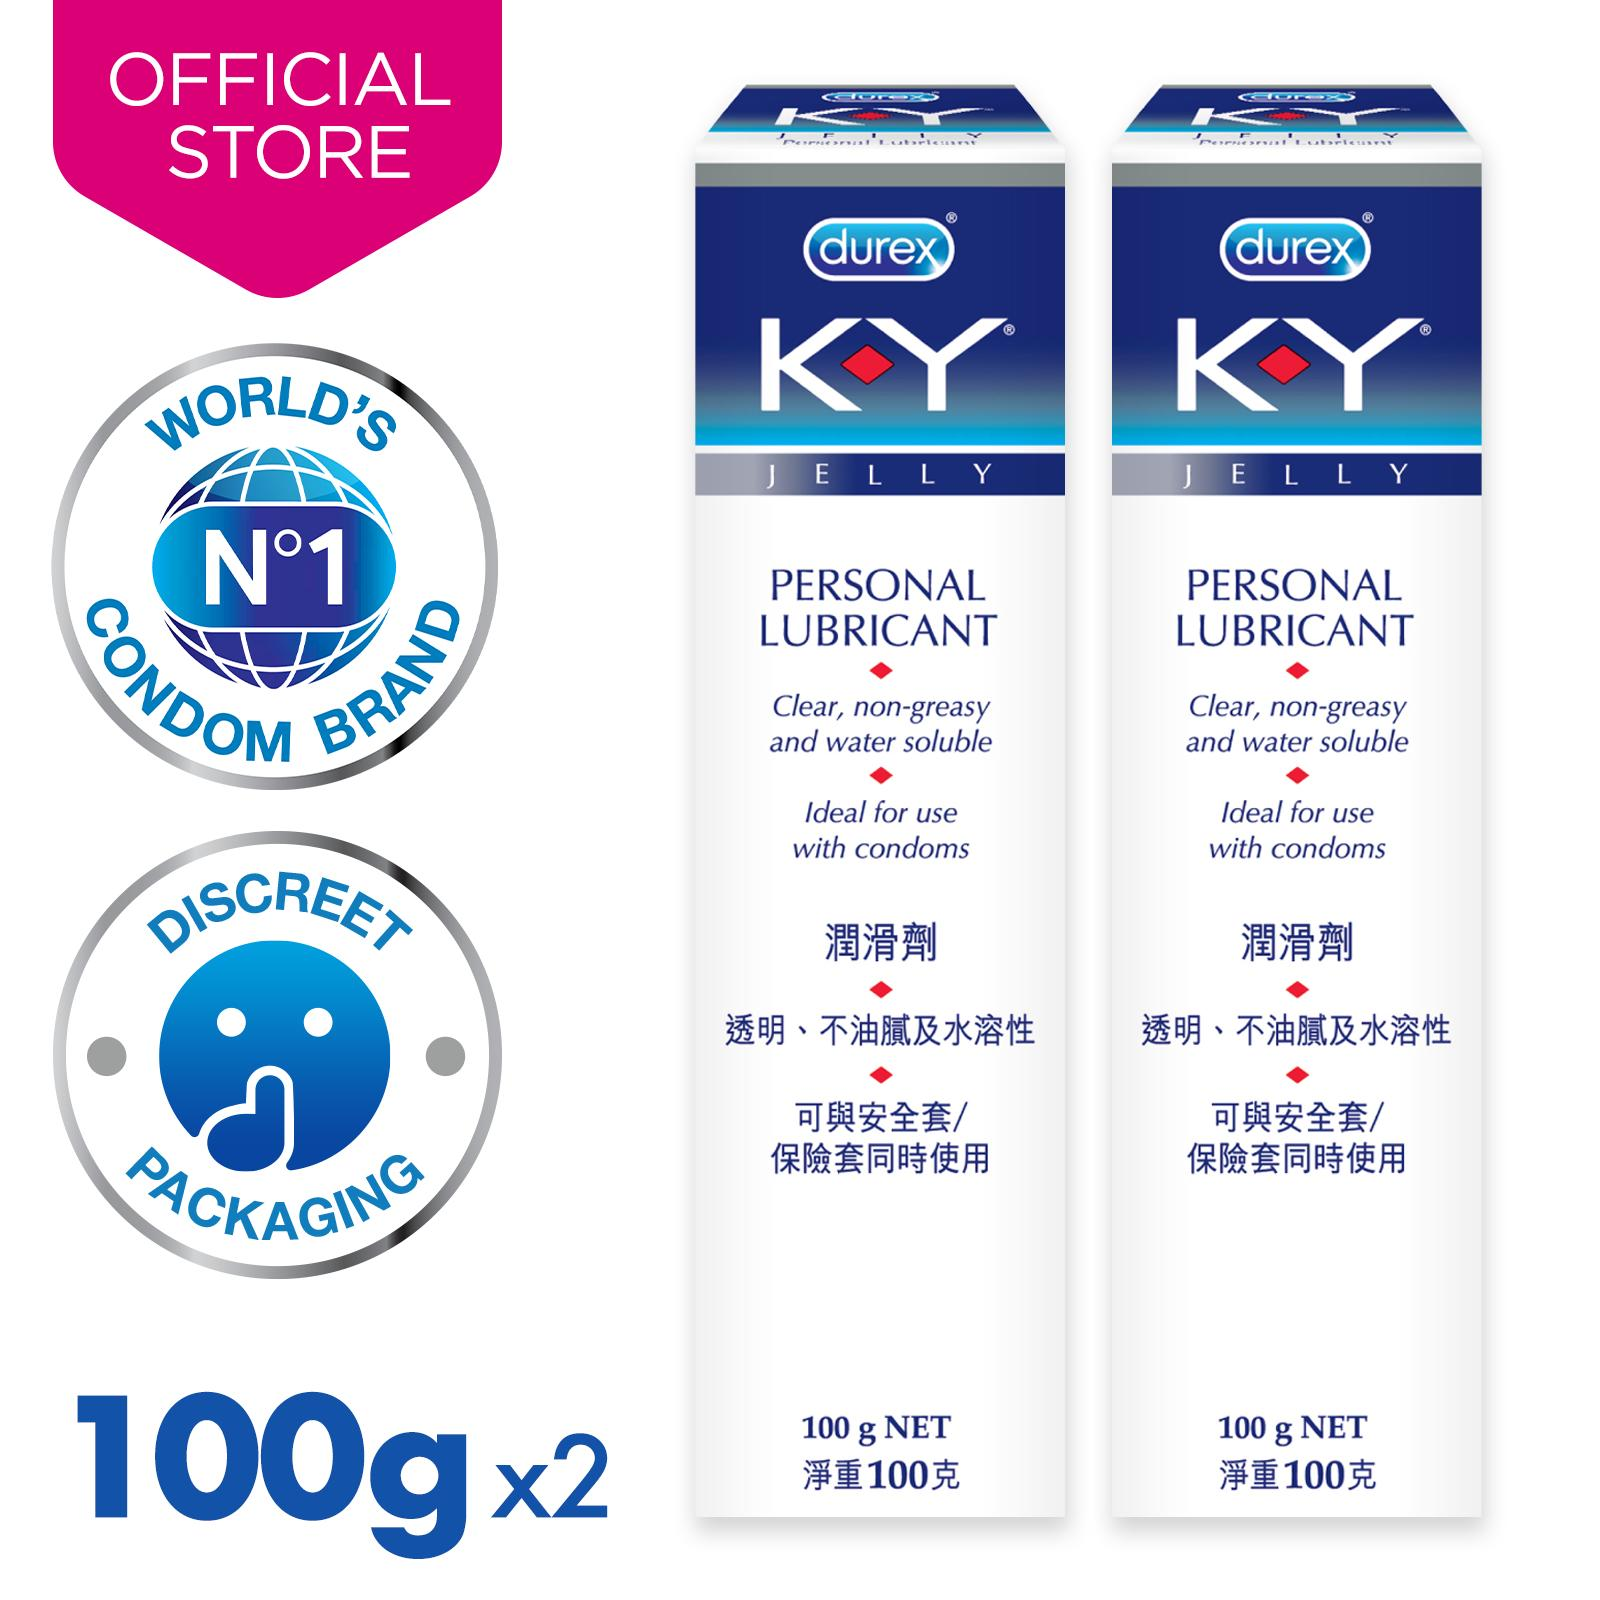 Durex K-Y Jelly Intimate Lube 100g Lubricant X 2 By Durex.